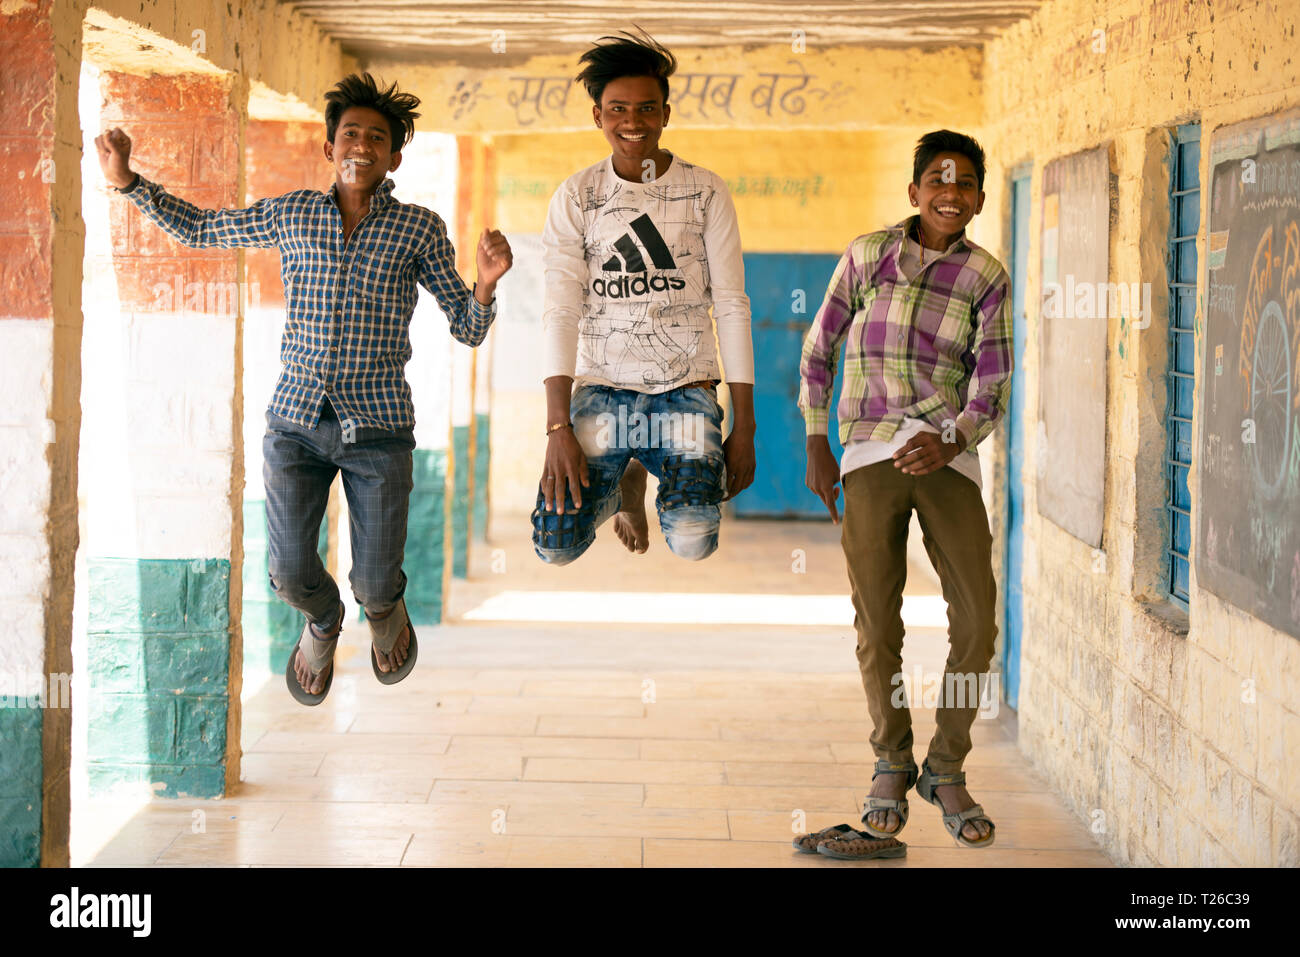 Young Bhil tribe boys acting silly, fooling around outside their village school in Rajasthan, India. Stock Photo